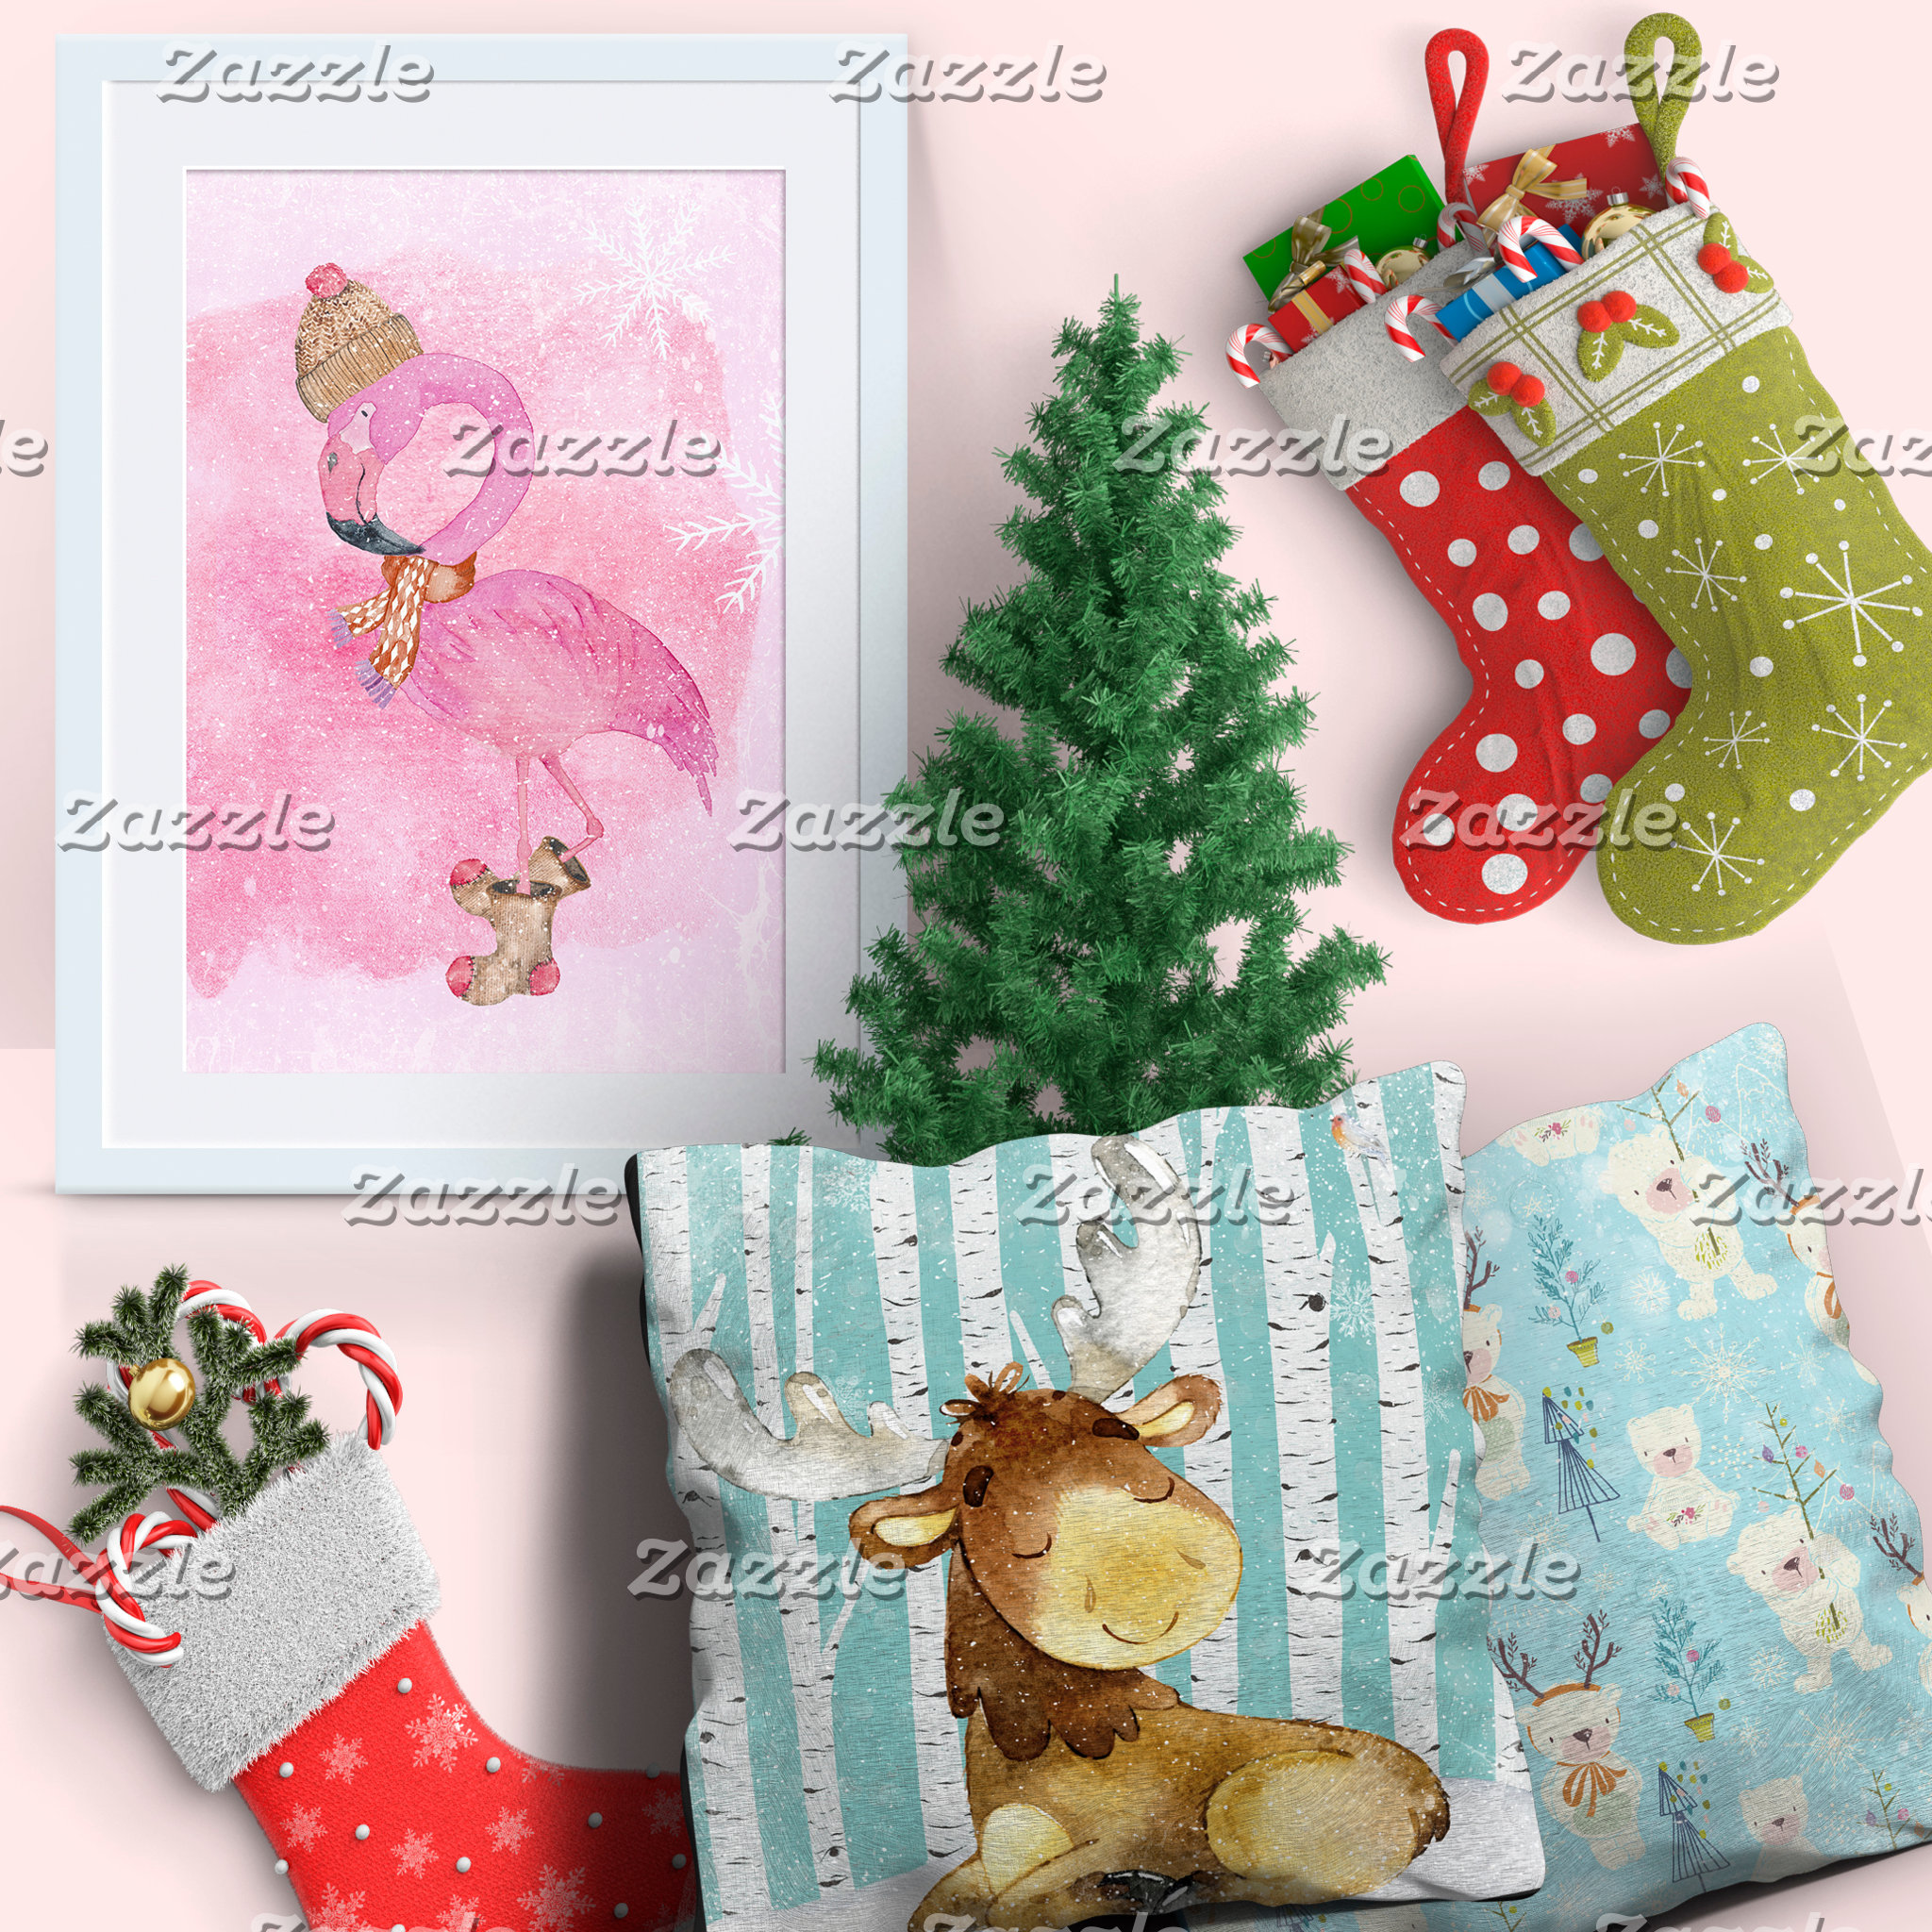 ALL CHRISTMAS GIFTS, CARDS AND XMAS DECORATION